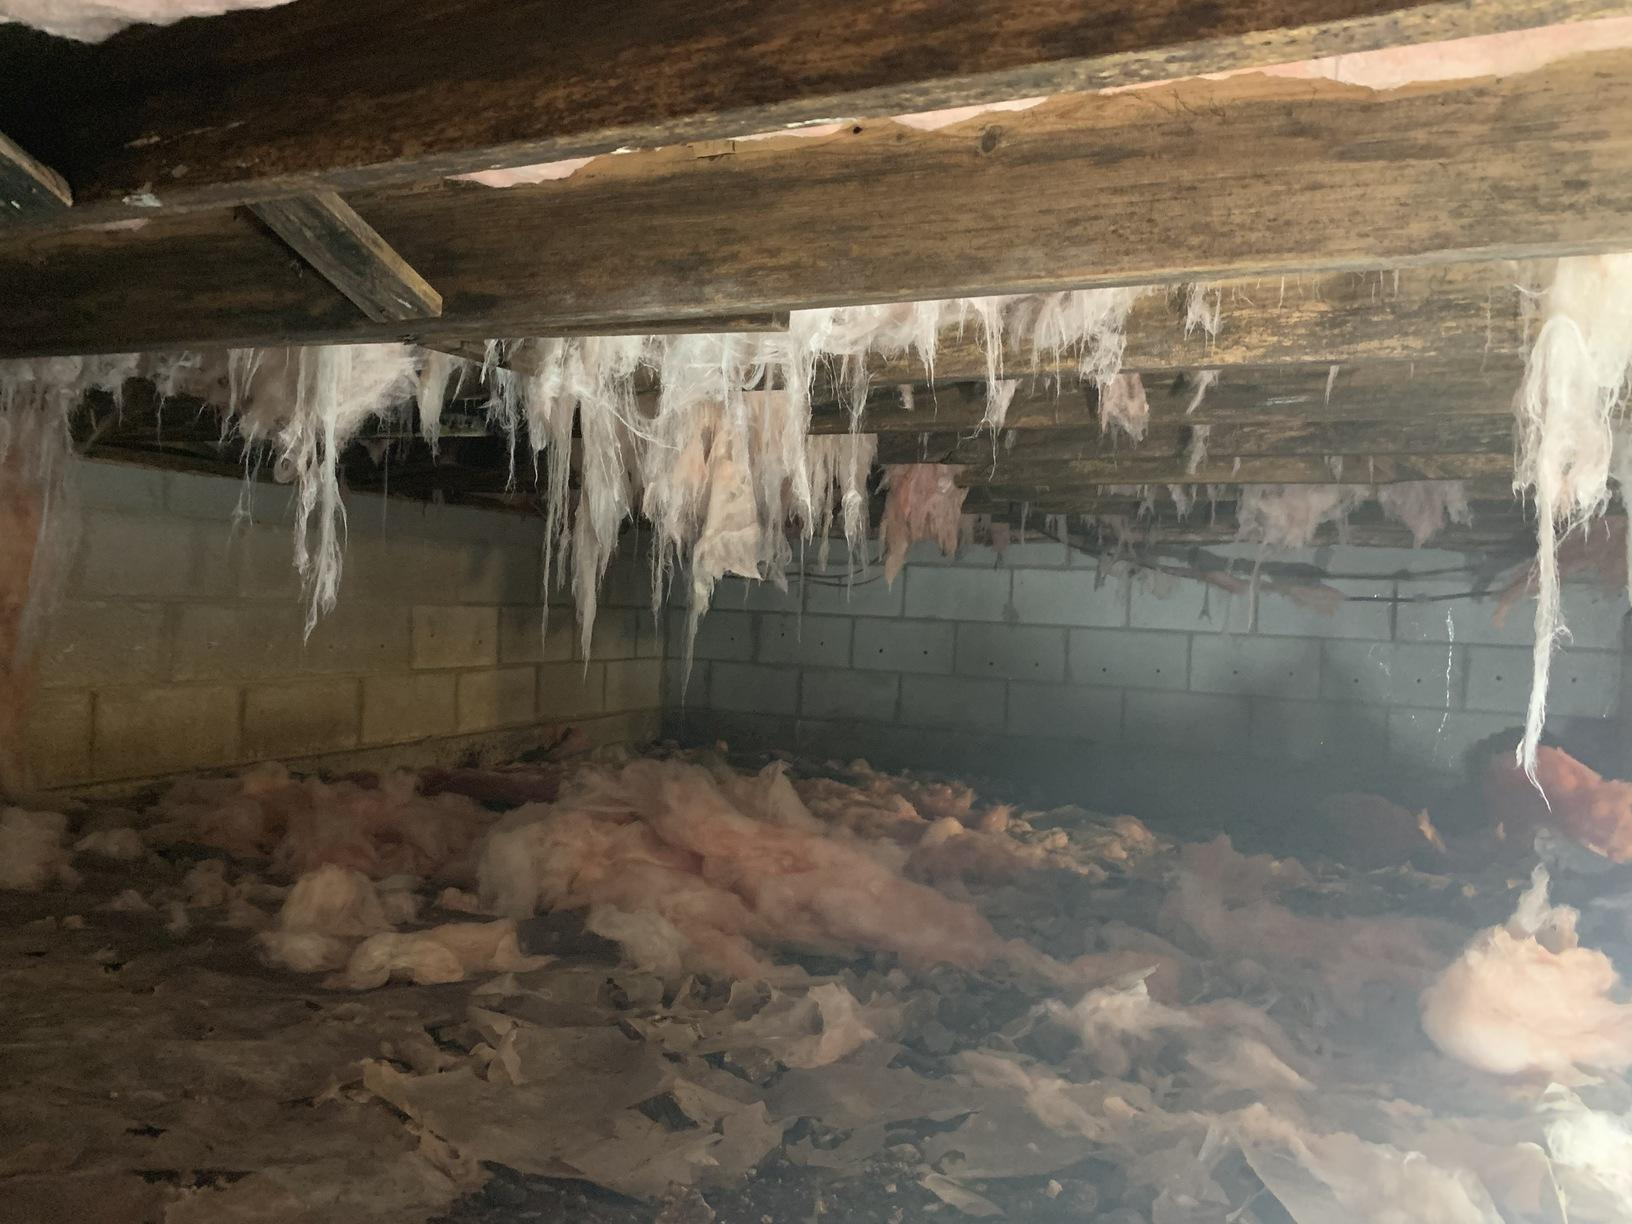 Wet crawlspace in need of clean up.